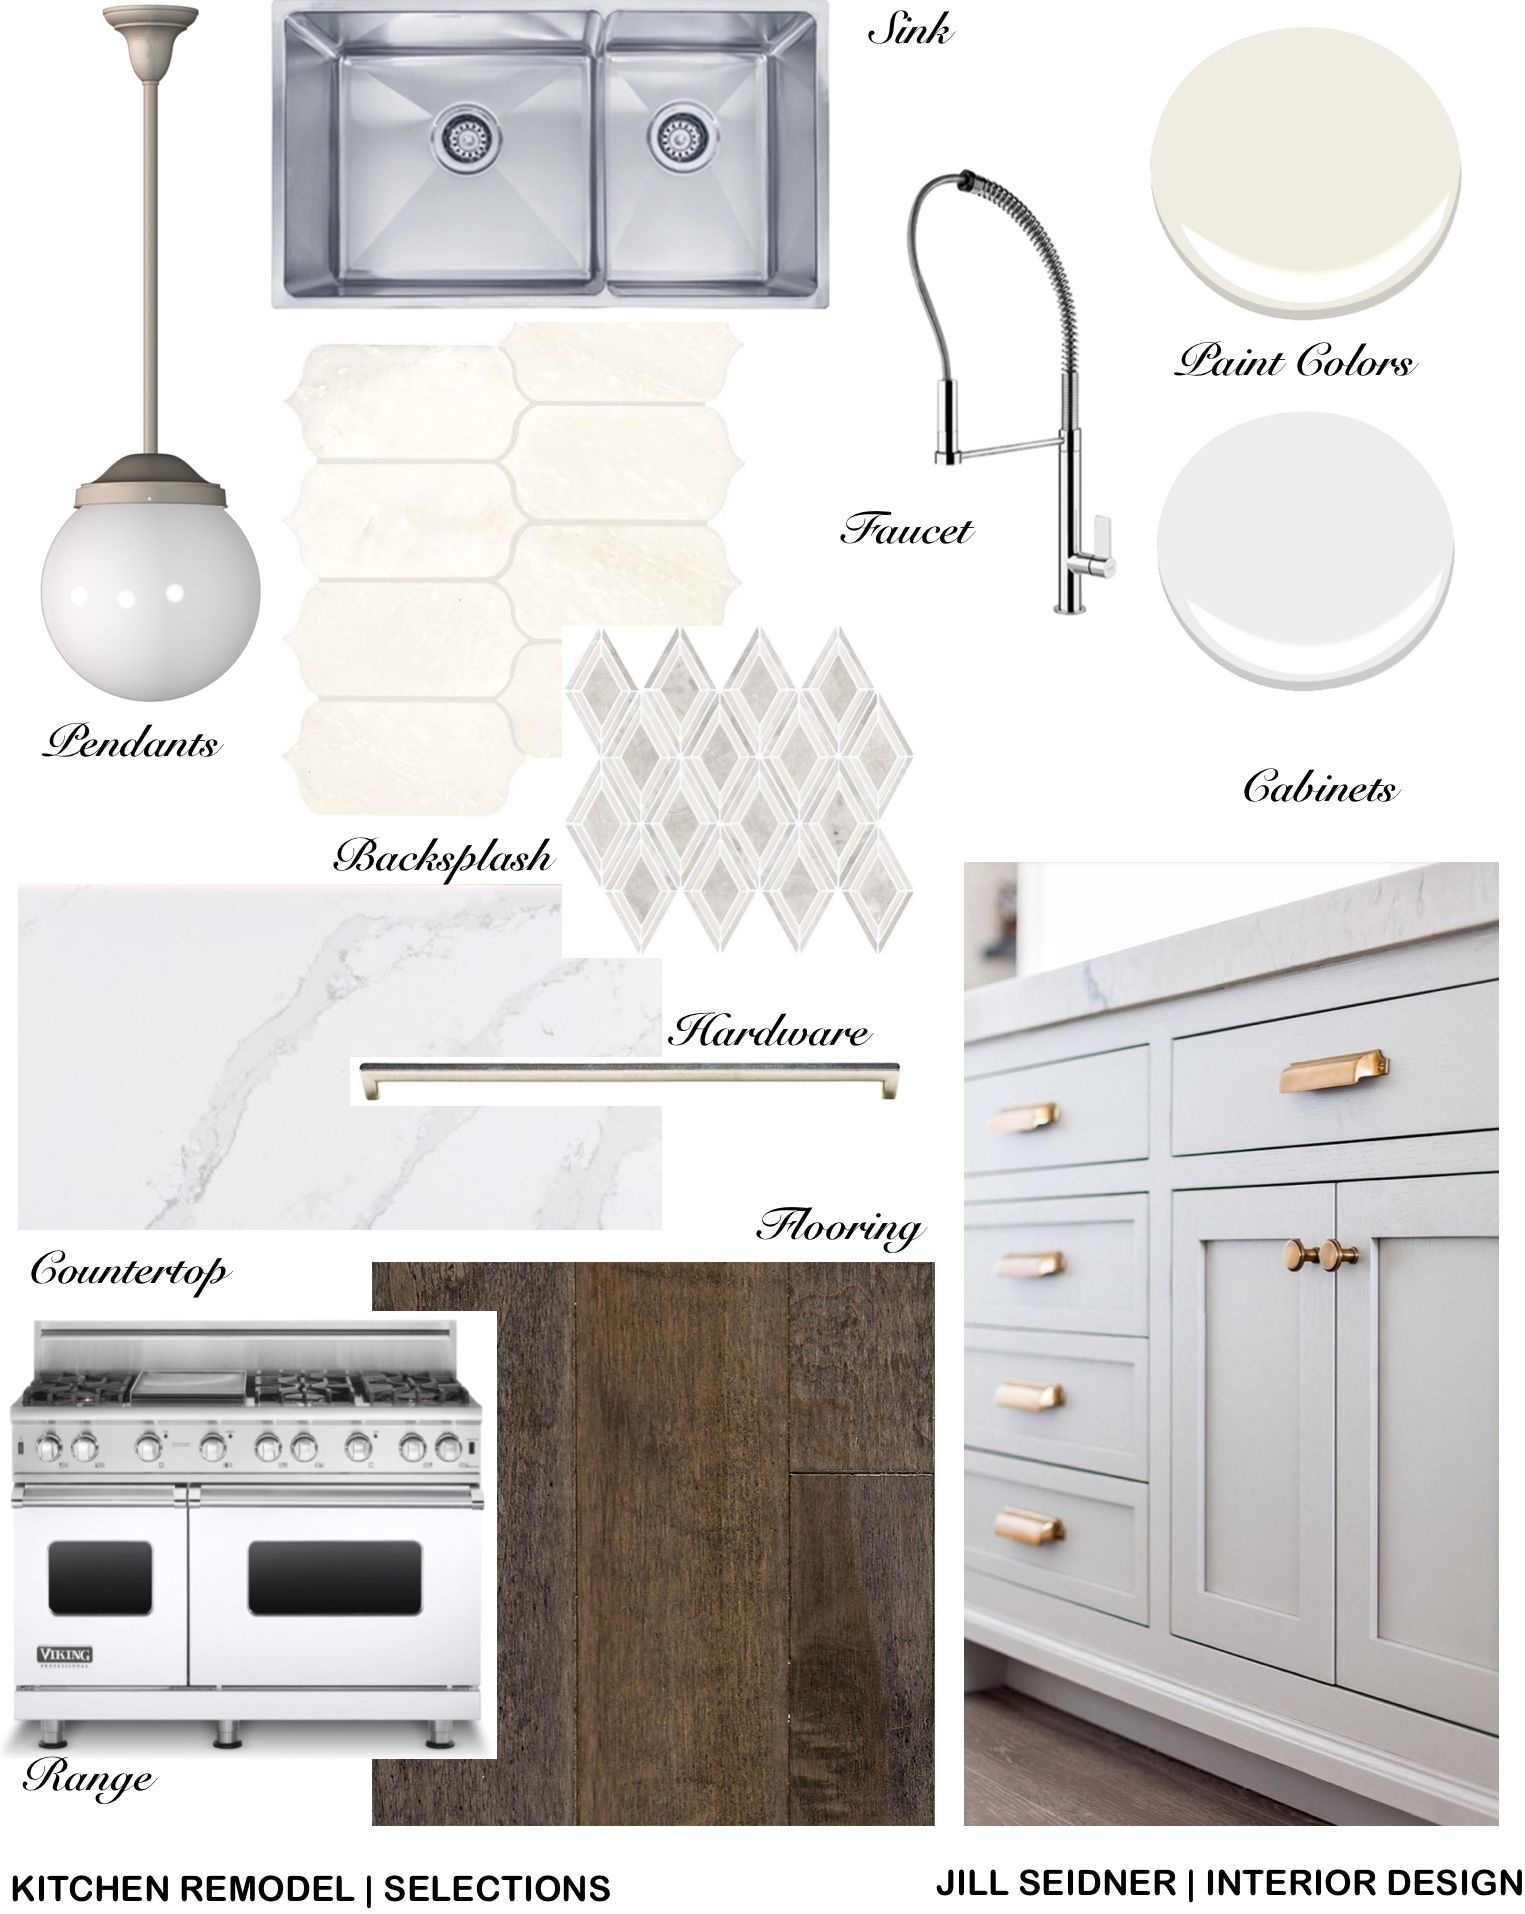 Bel Air, CA Residence Kitchen Remodel Selections Concept Board ...